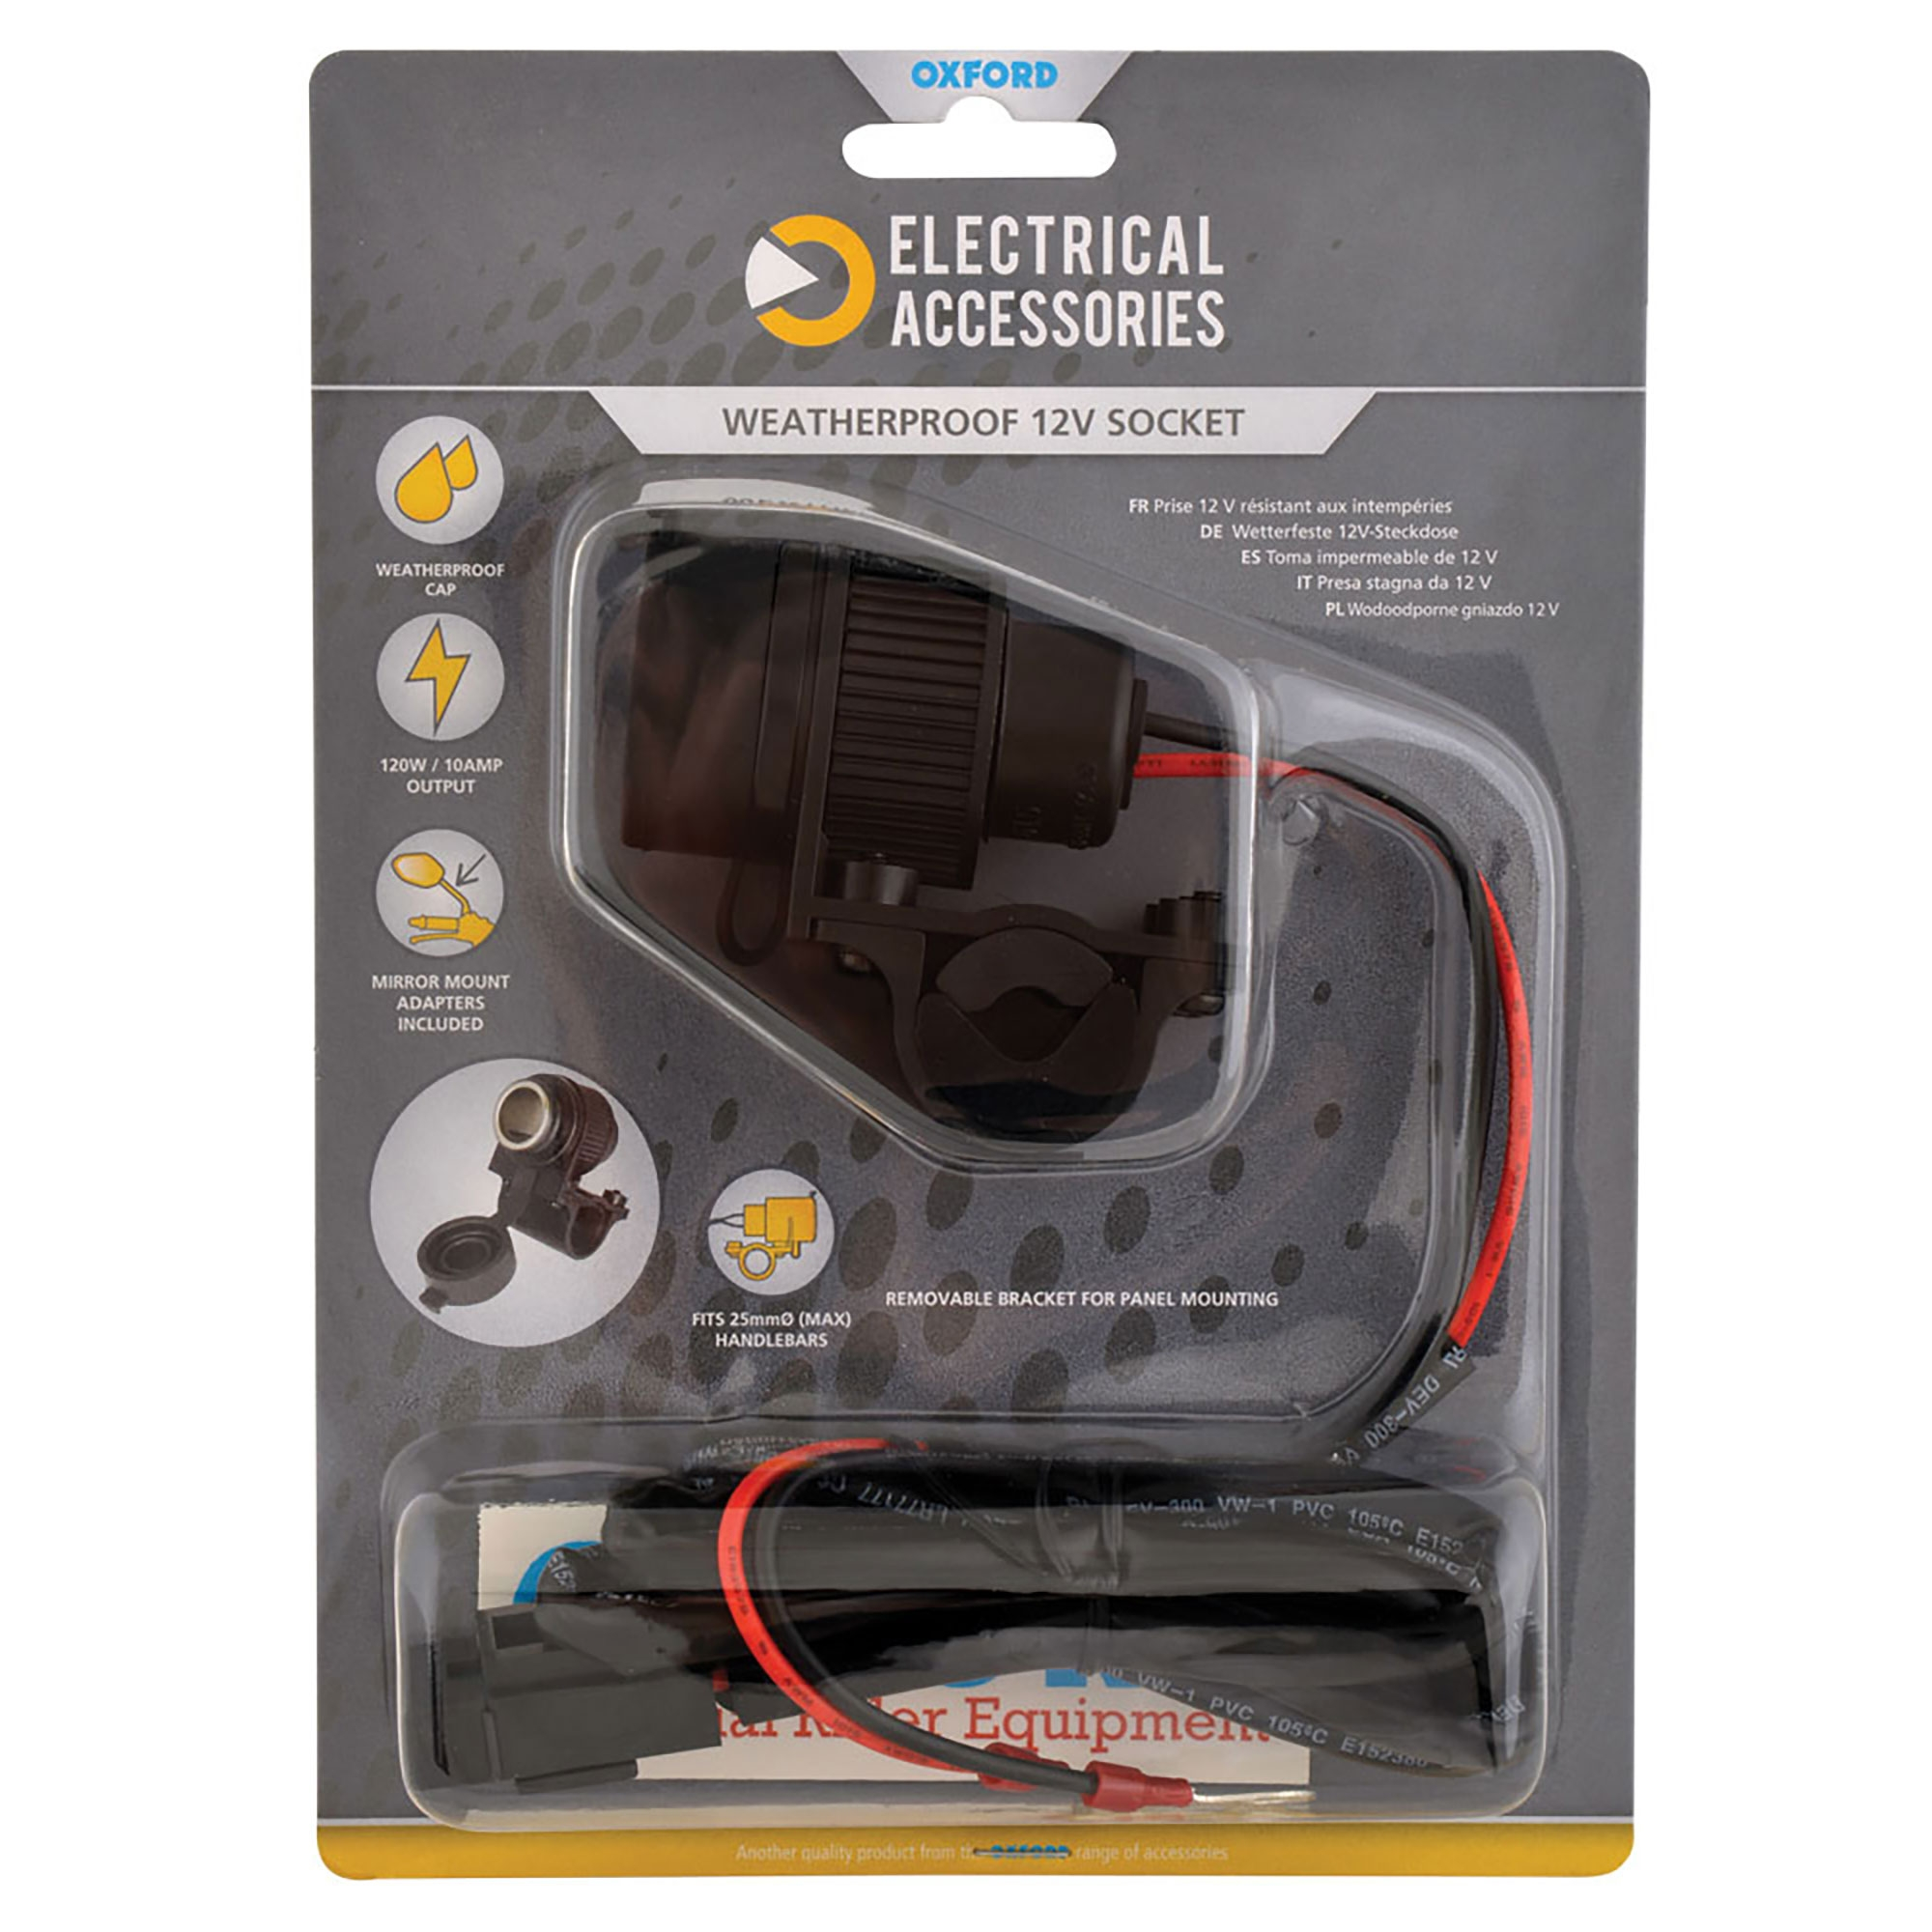 Oxford High Power USB 2.1 Charging Kit with battery harness EL114